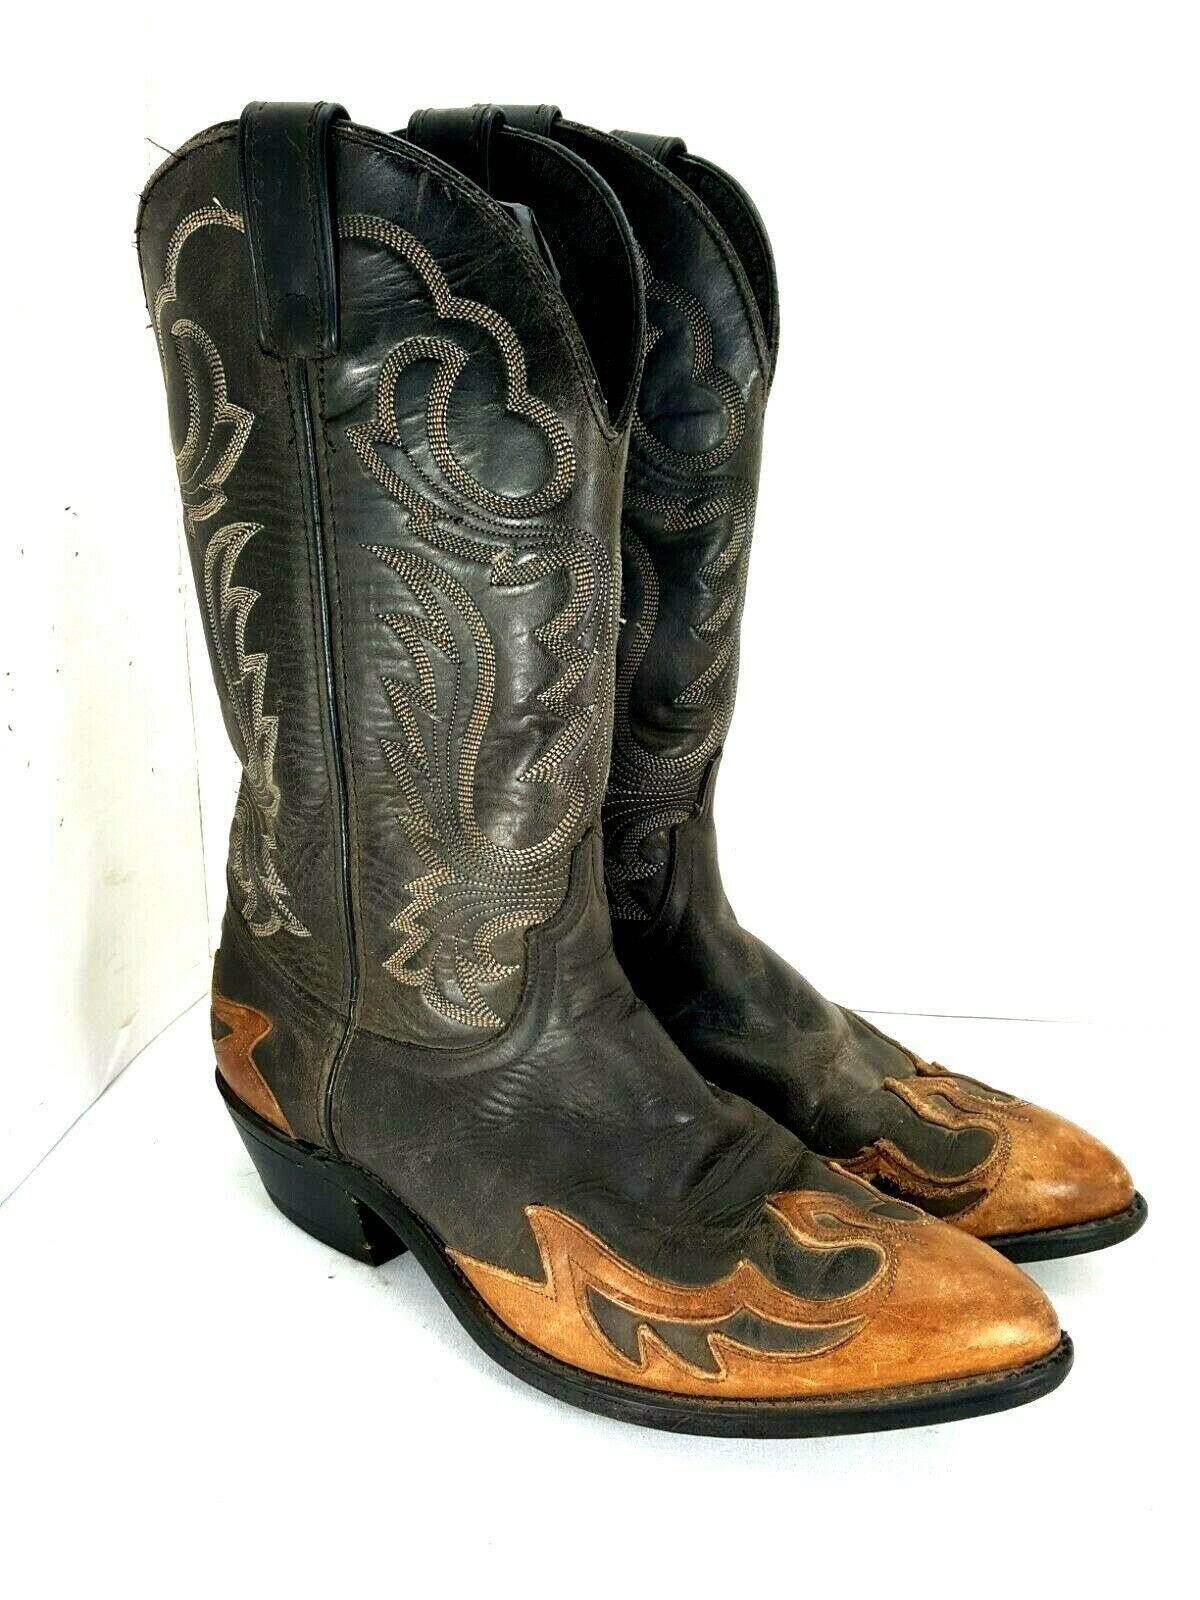 Primary image for Vintage Men's Code West  Brown,Black Distressed Cowboy Western  Boots Size 8 D